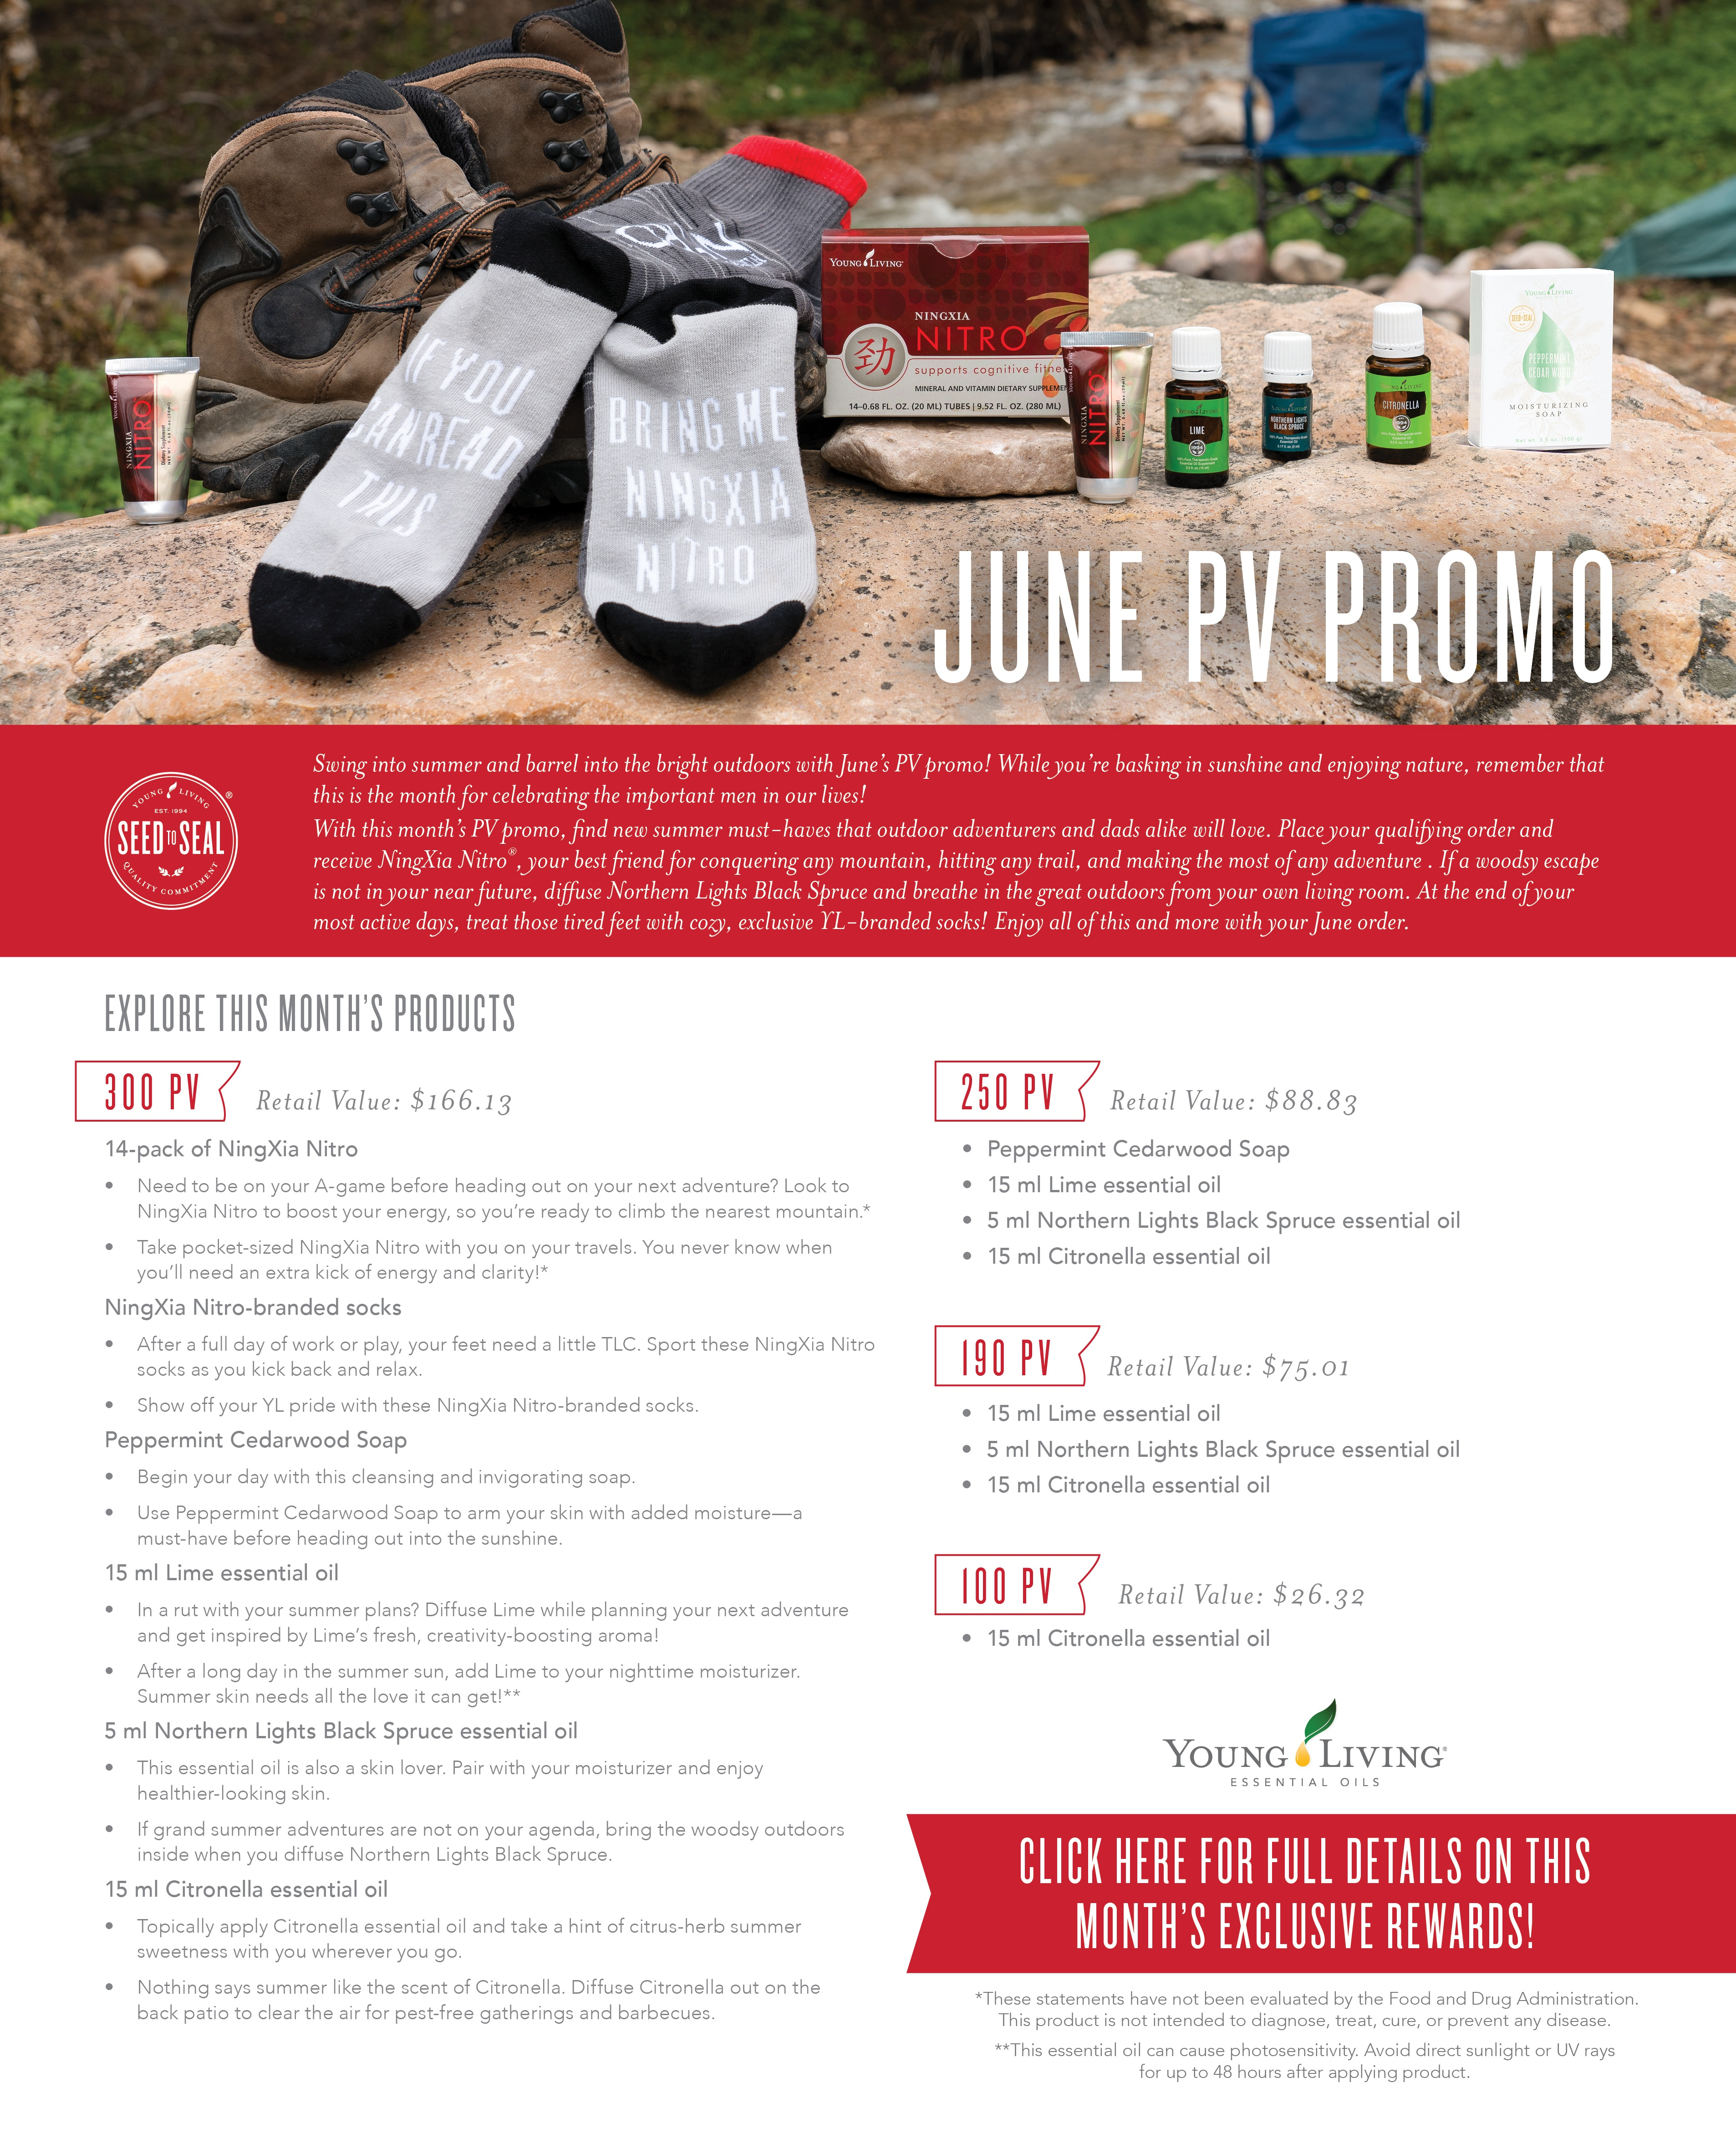 June Young Living PV Promo